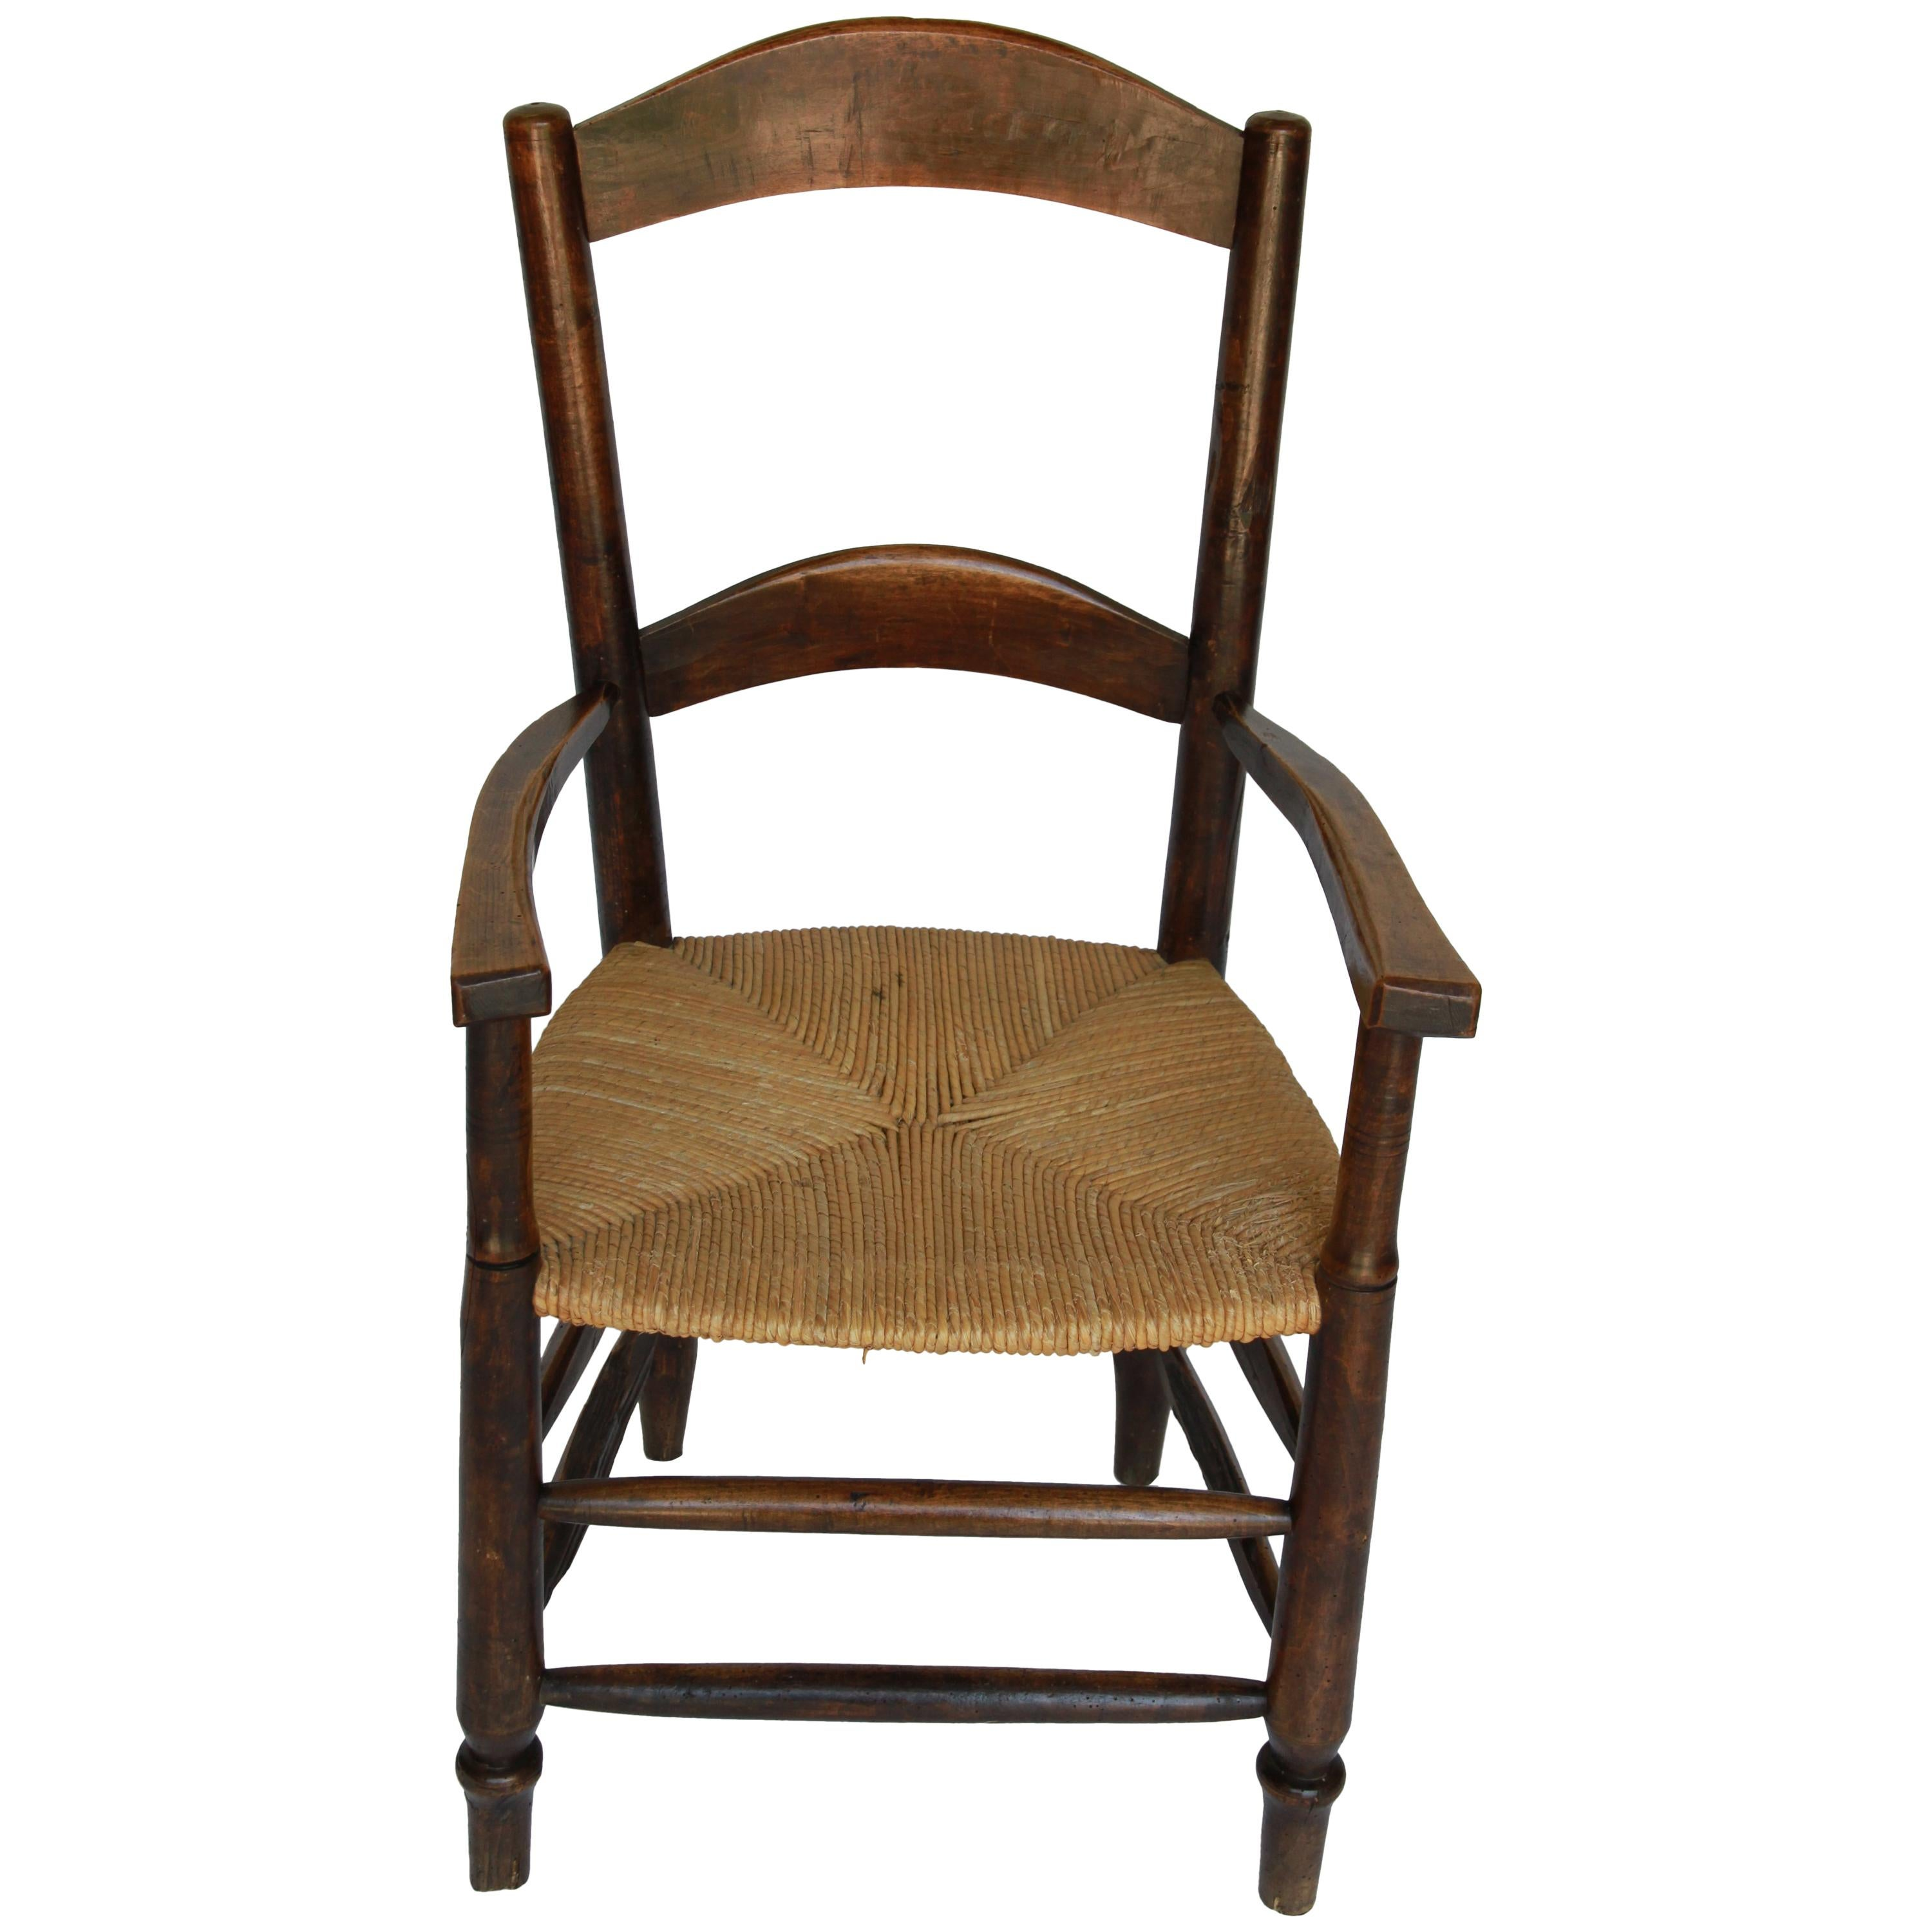 19th Century French Wood Rush Seat Chair For Sale  sc 1 st  1stDibs & 19th Century French Wood Rush Seat Chair For Sale at 1stdibs